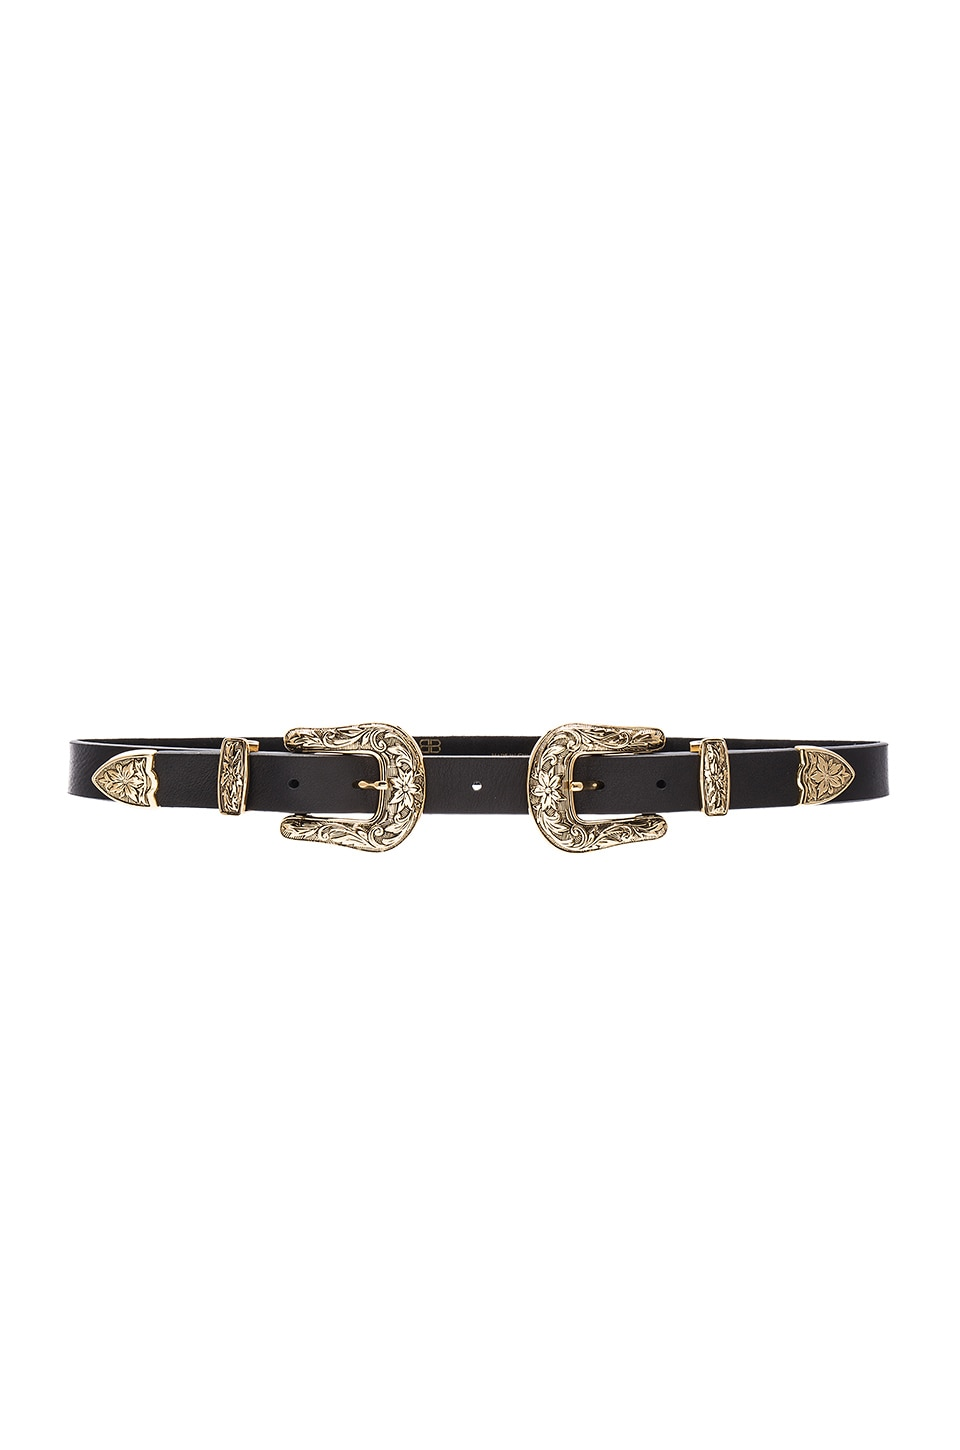 B-Low the Belt Baby Bri Bri Hip Belt in Black & Gold